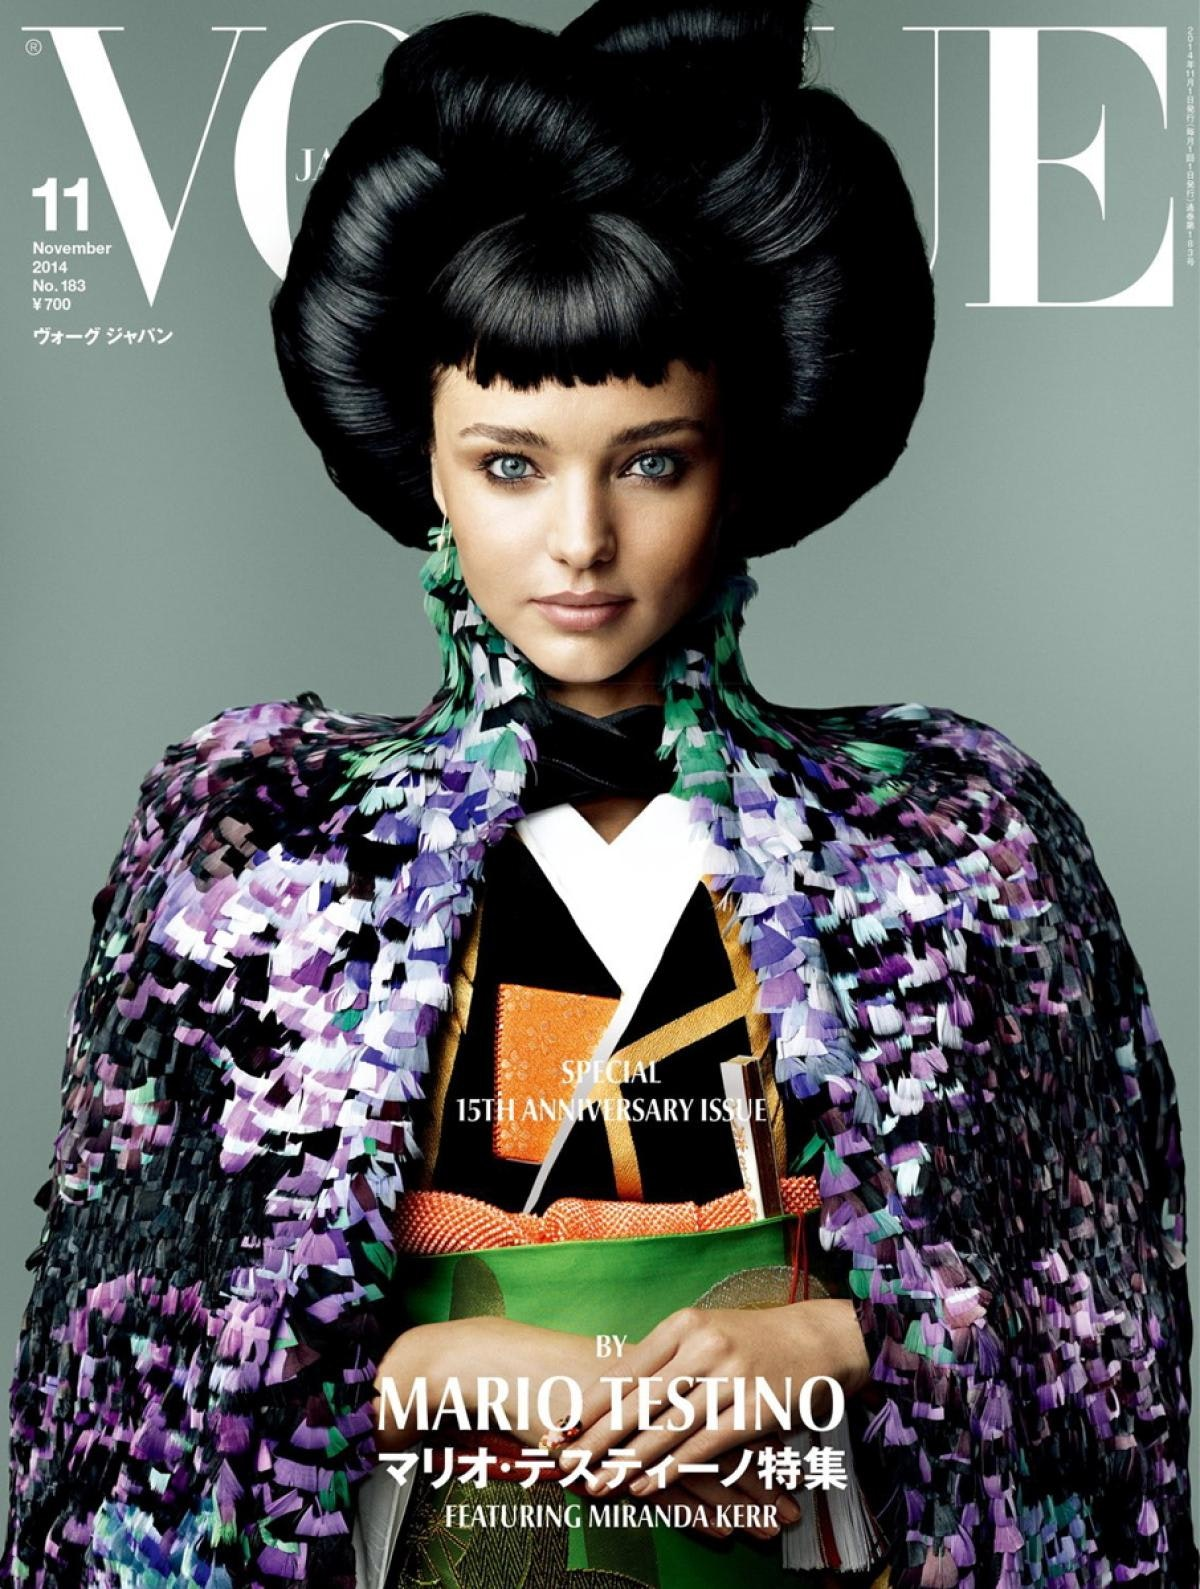 Miranda Kerr Goes Geisha In Vogue And That Might Be Ok